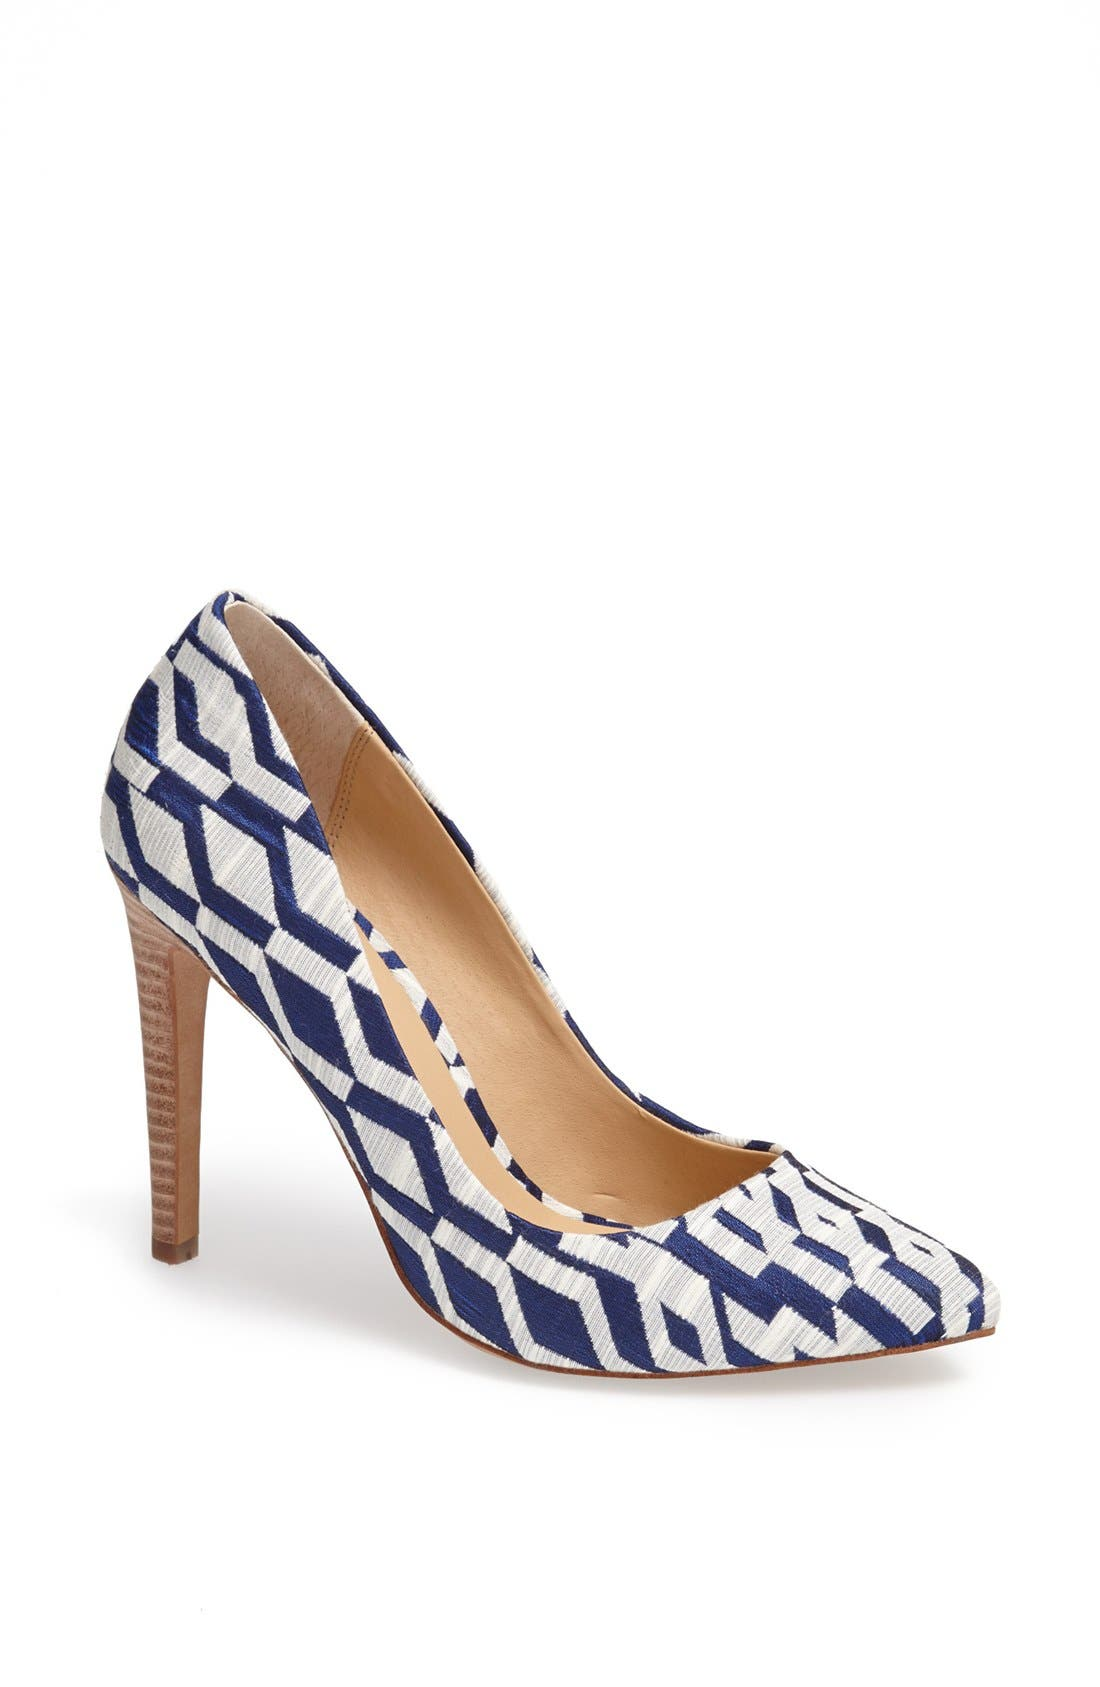 Main Image - Joe's 'Erika' Pointy Toe Pump